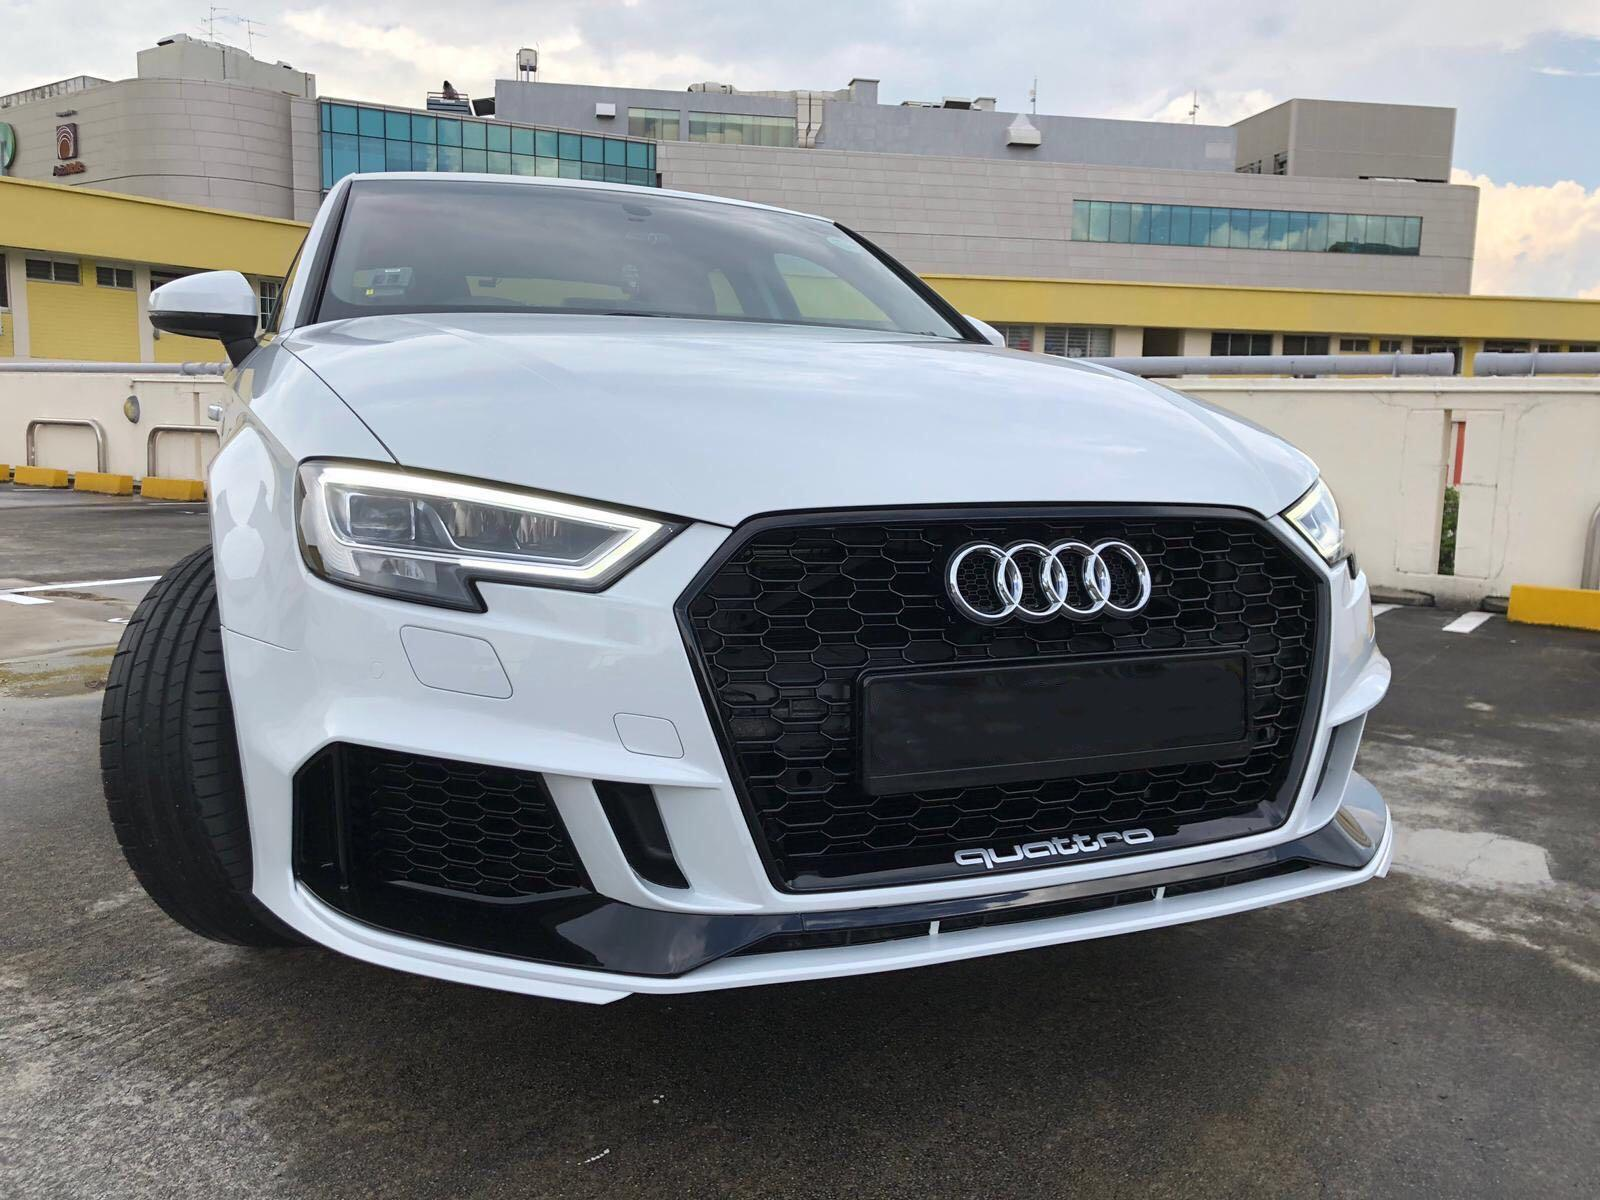 Audi A3 8V RS3 Bodykit, Car Accessories, Accessories on